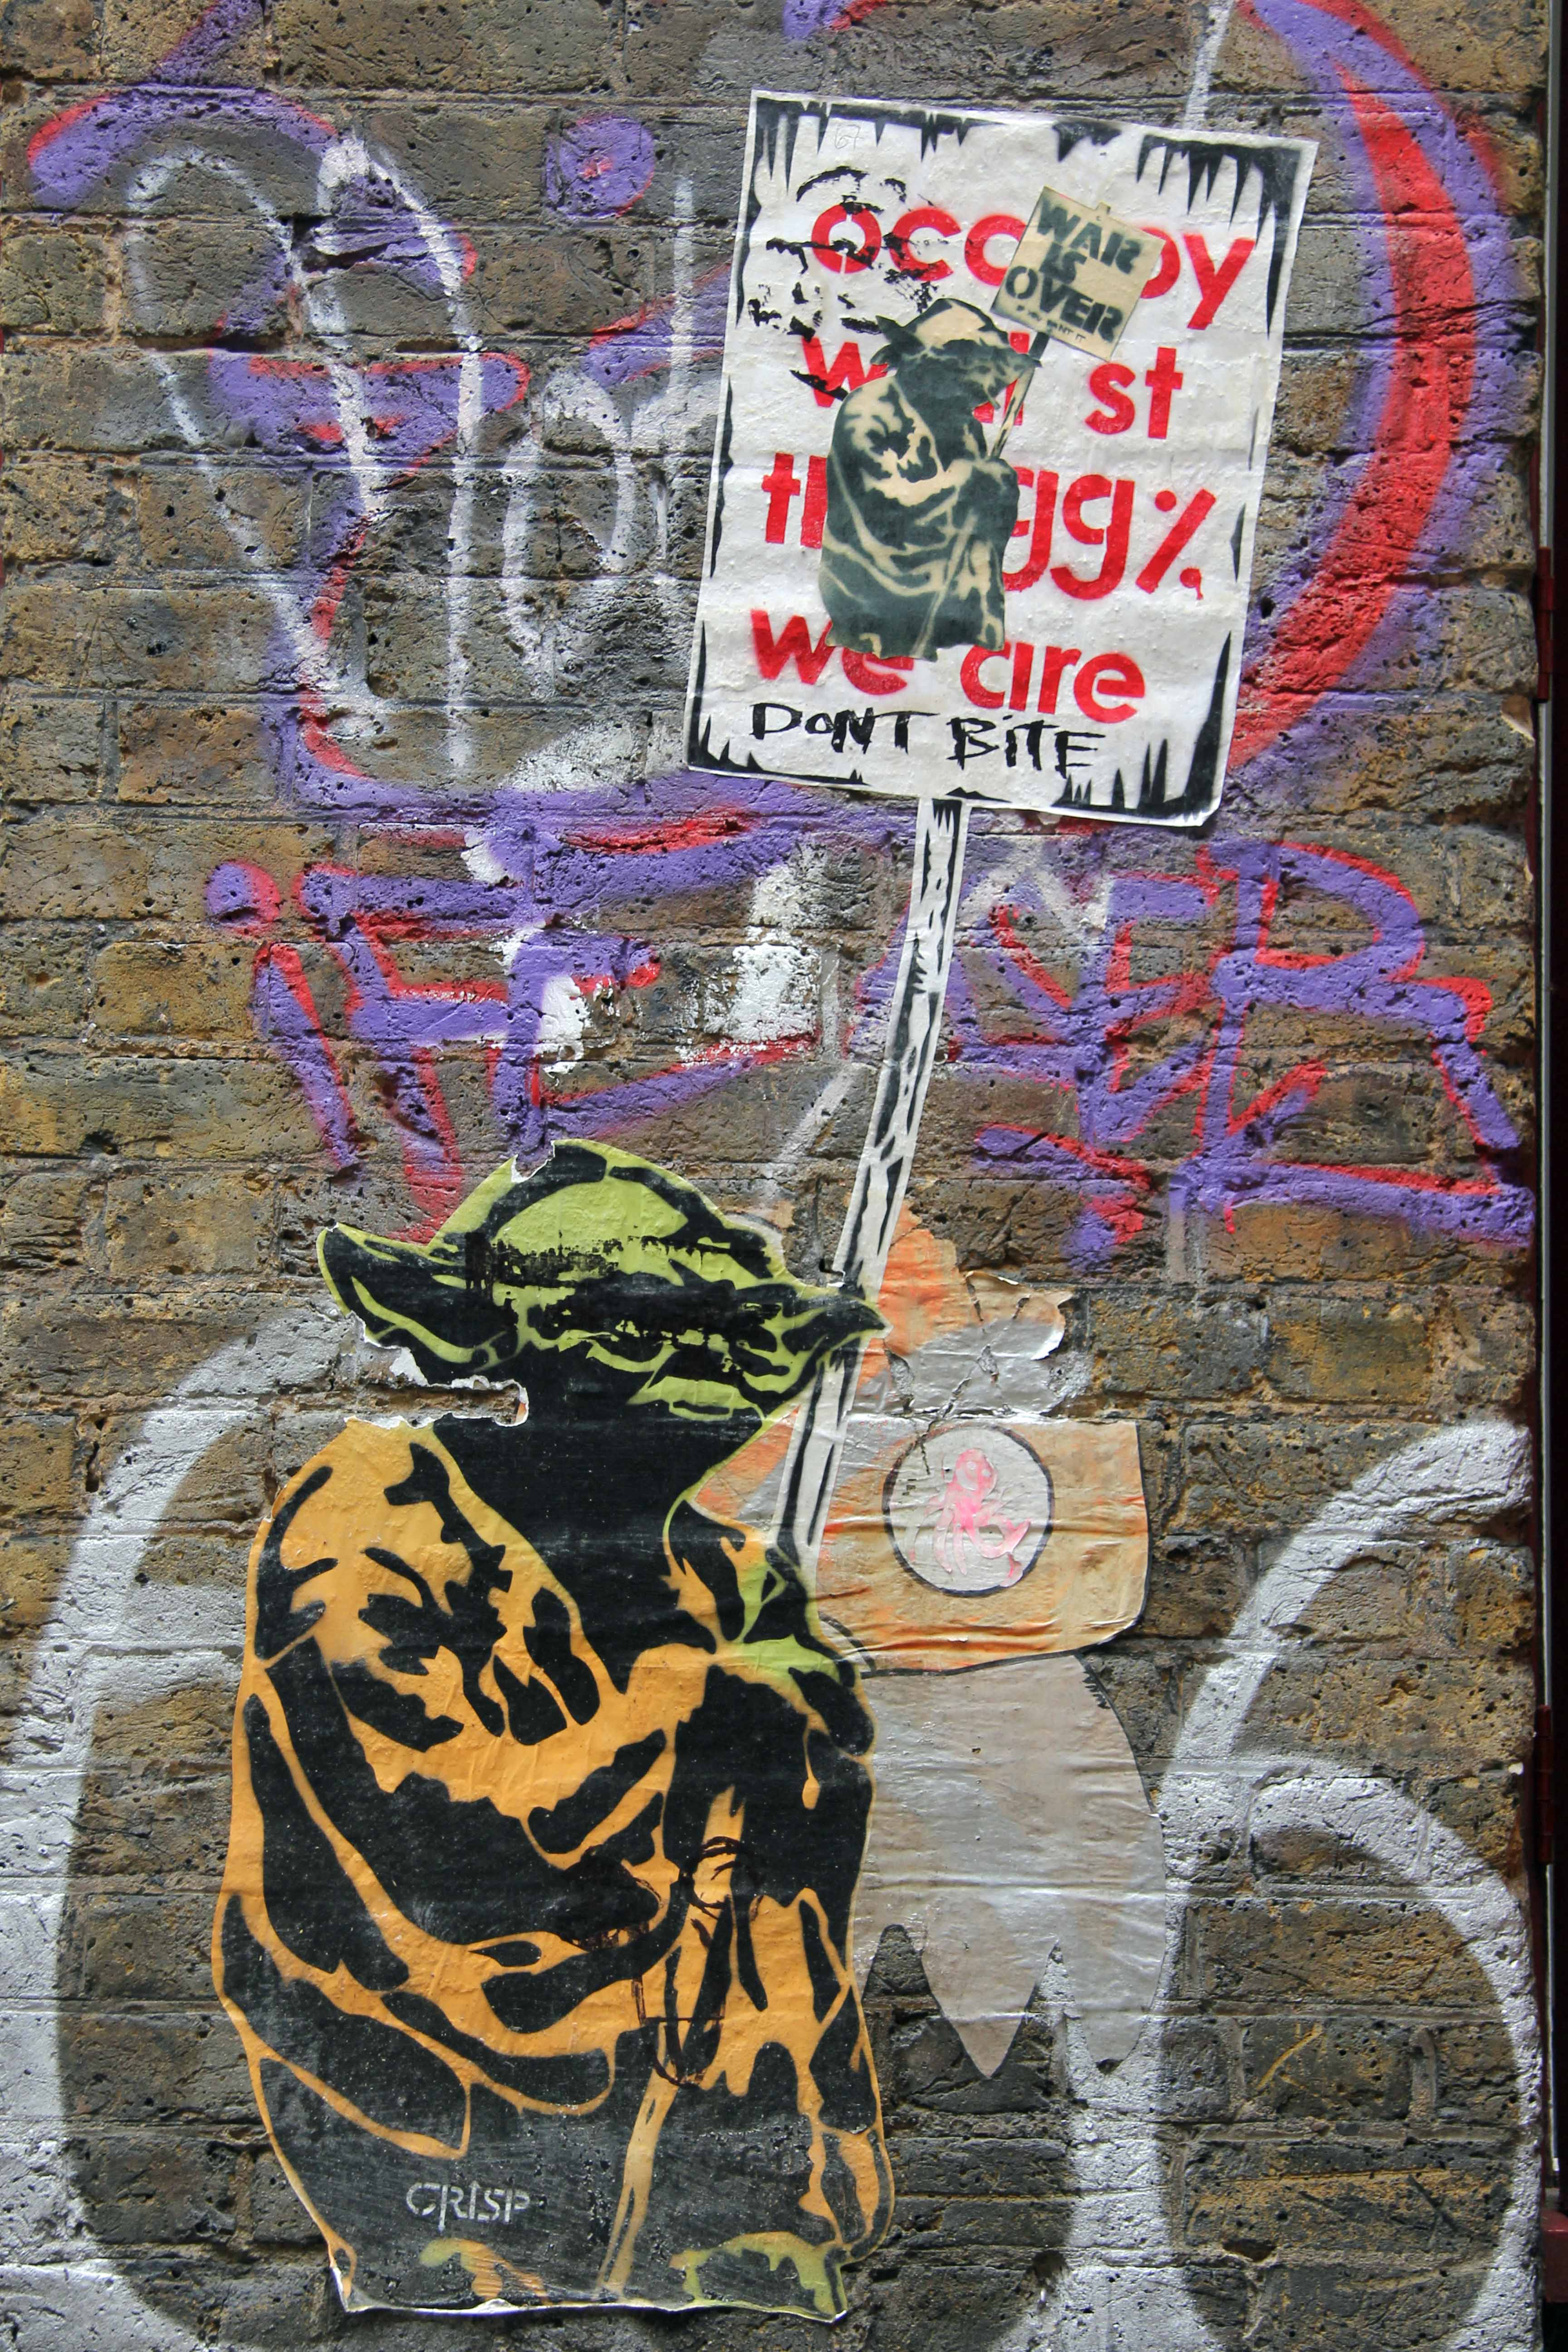 Yoda Protesting for the Occupy movement - Street Art by CRISP in East London